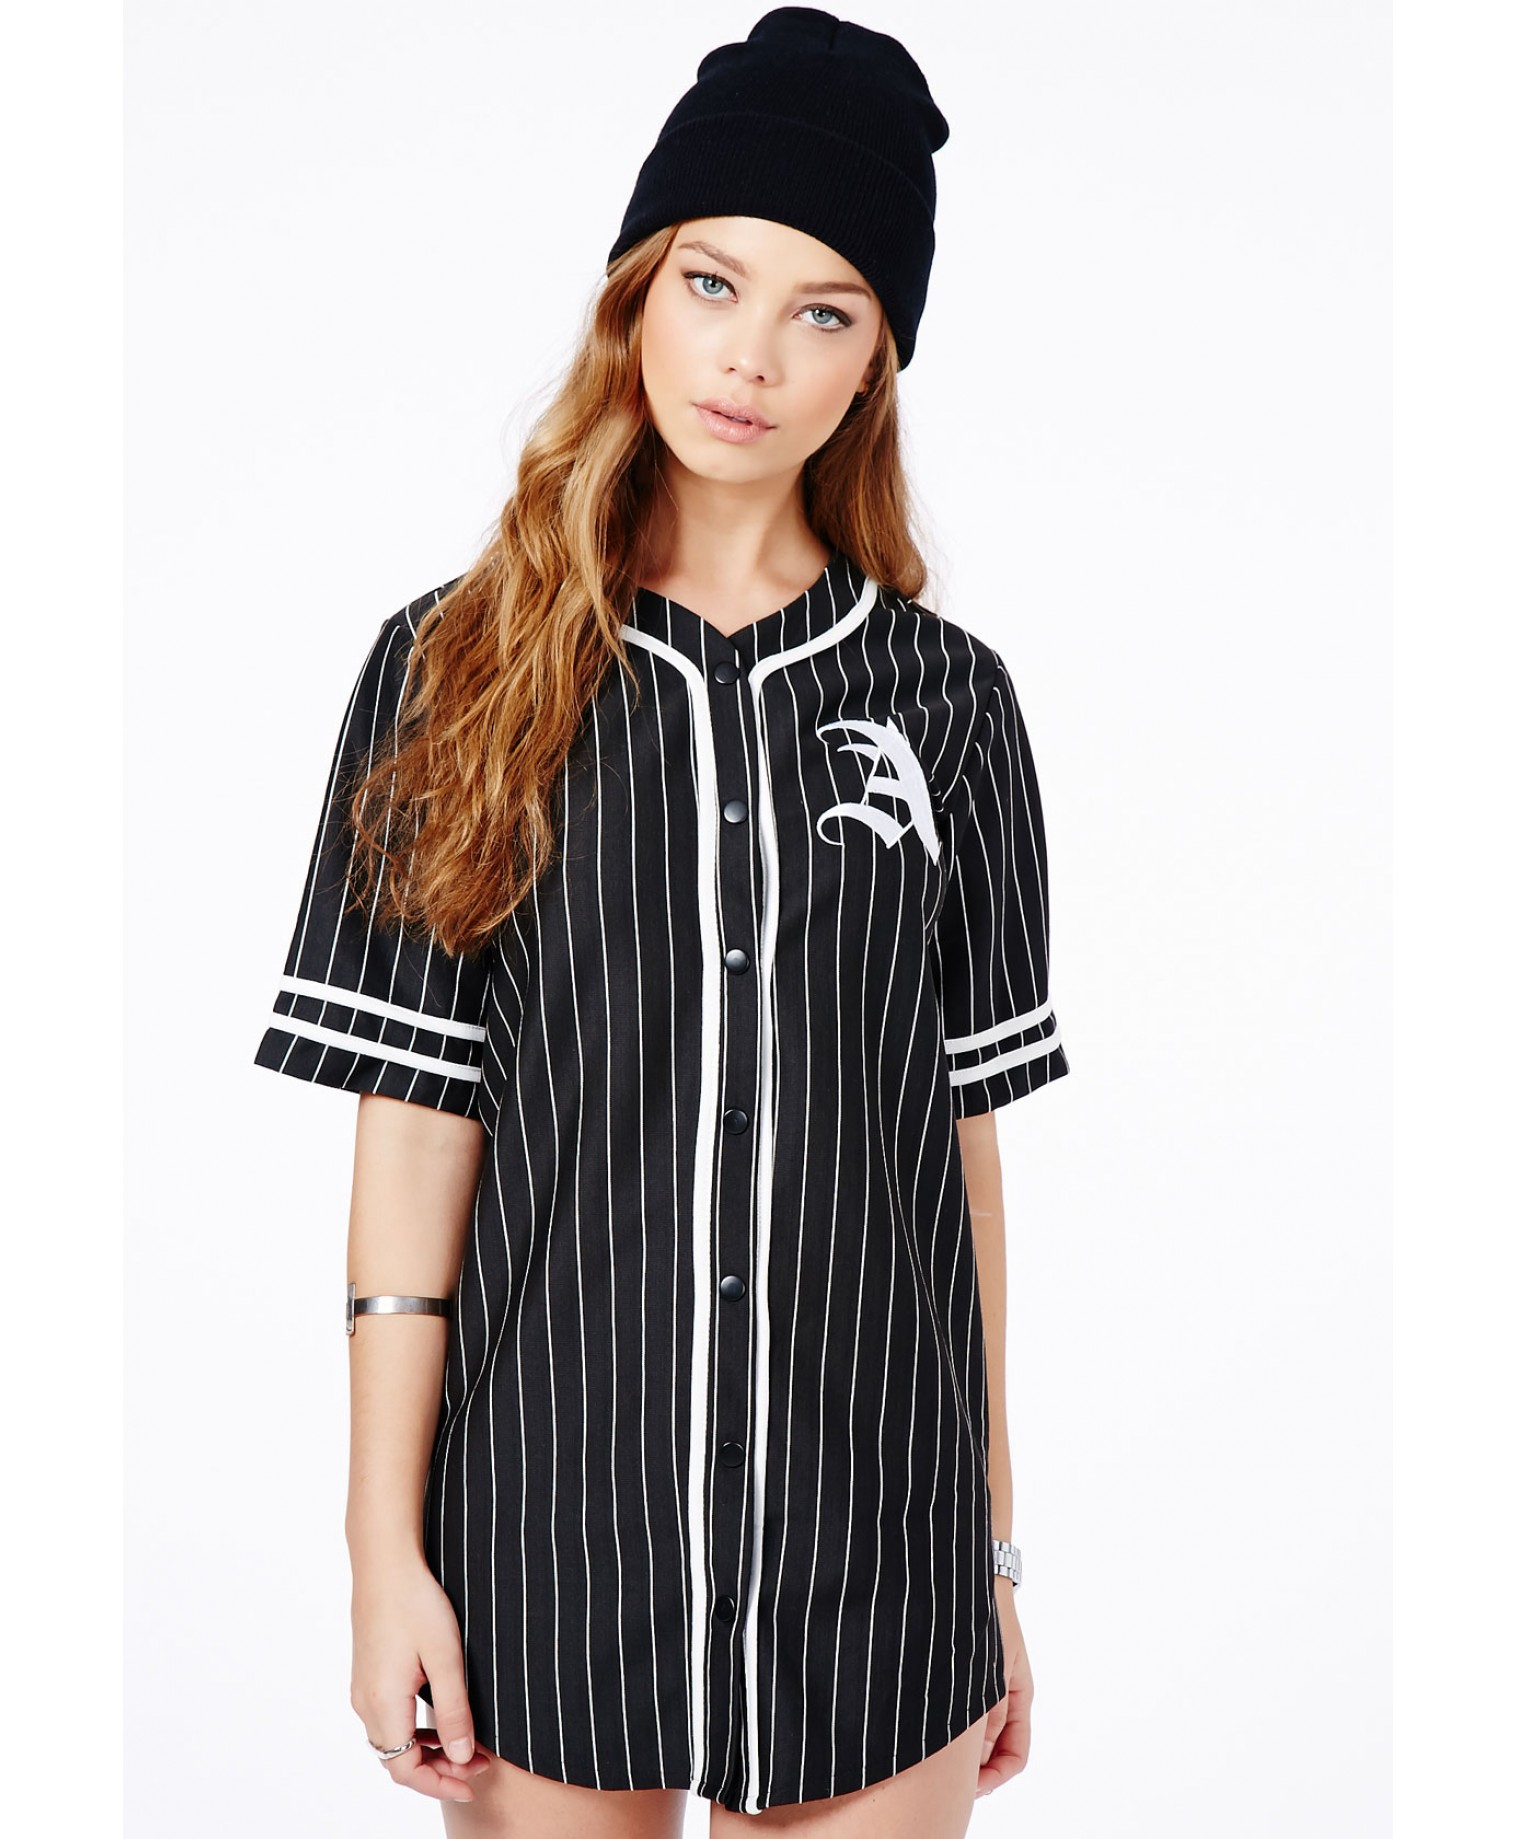 Missguided Paris Oversized A Baseball Shirt Dress In Black In Black